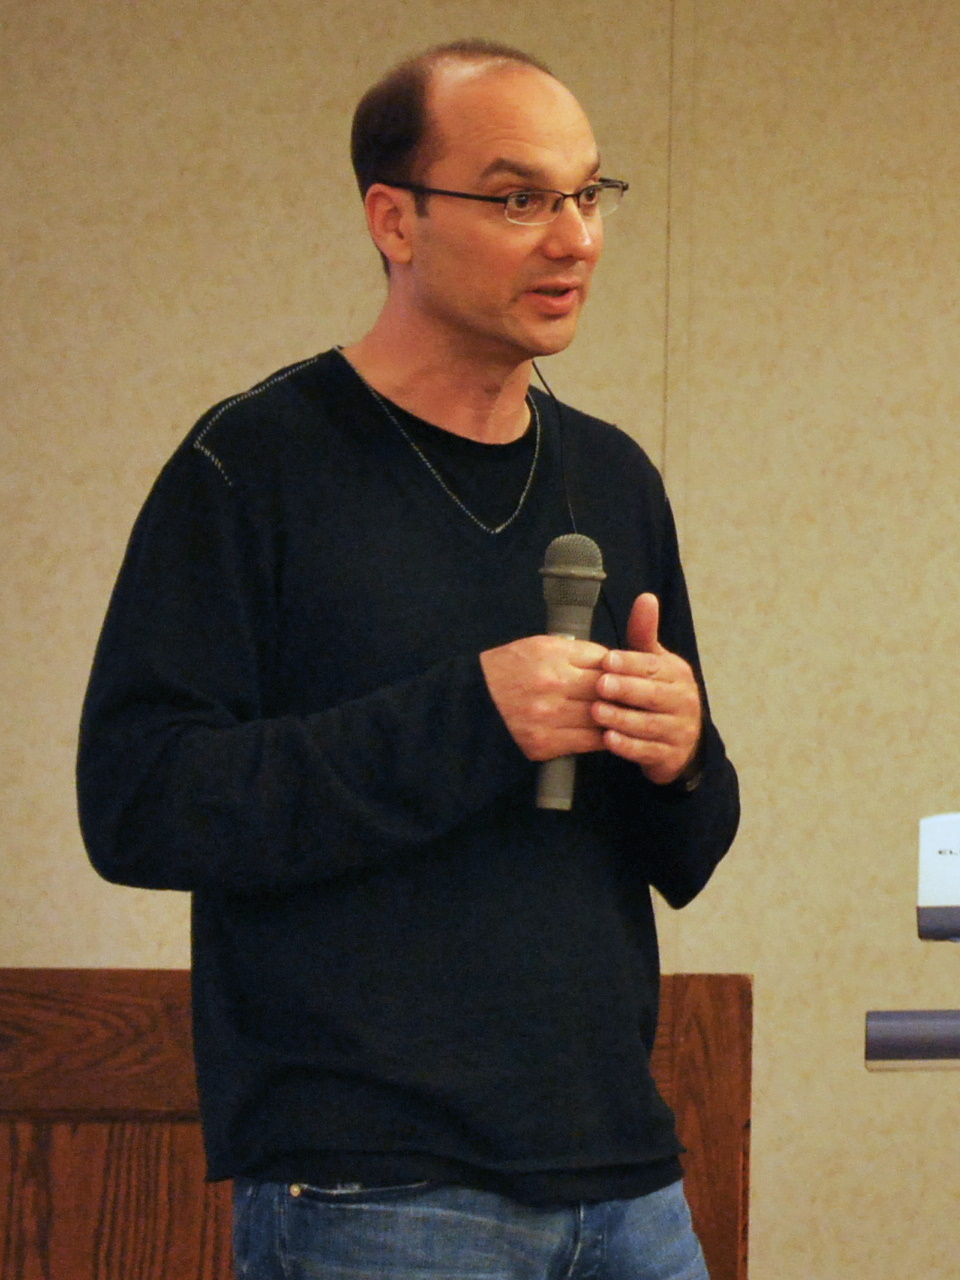 Andy Rubin - Wikipedia